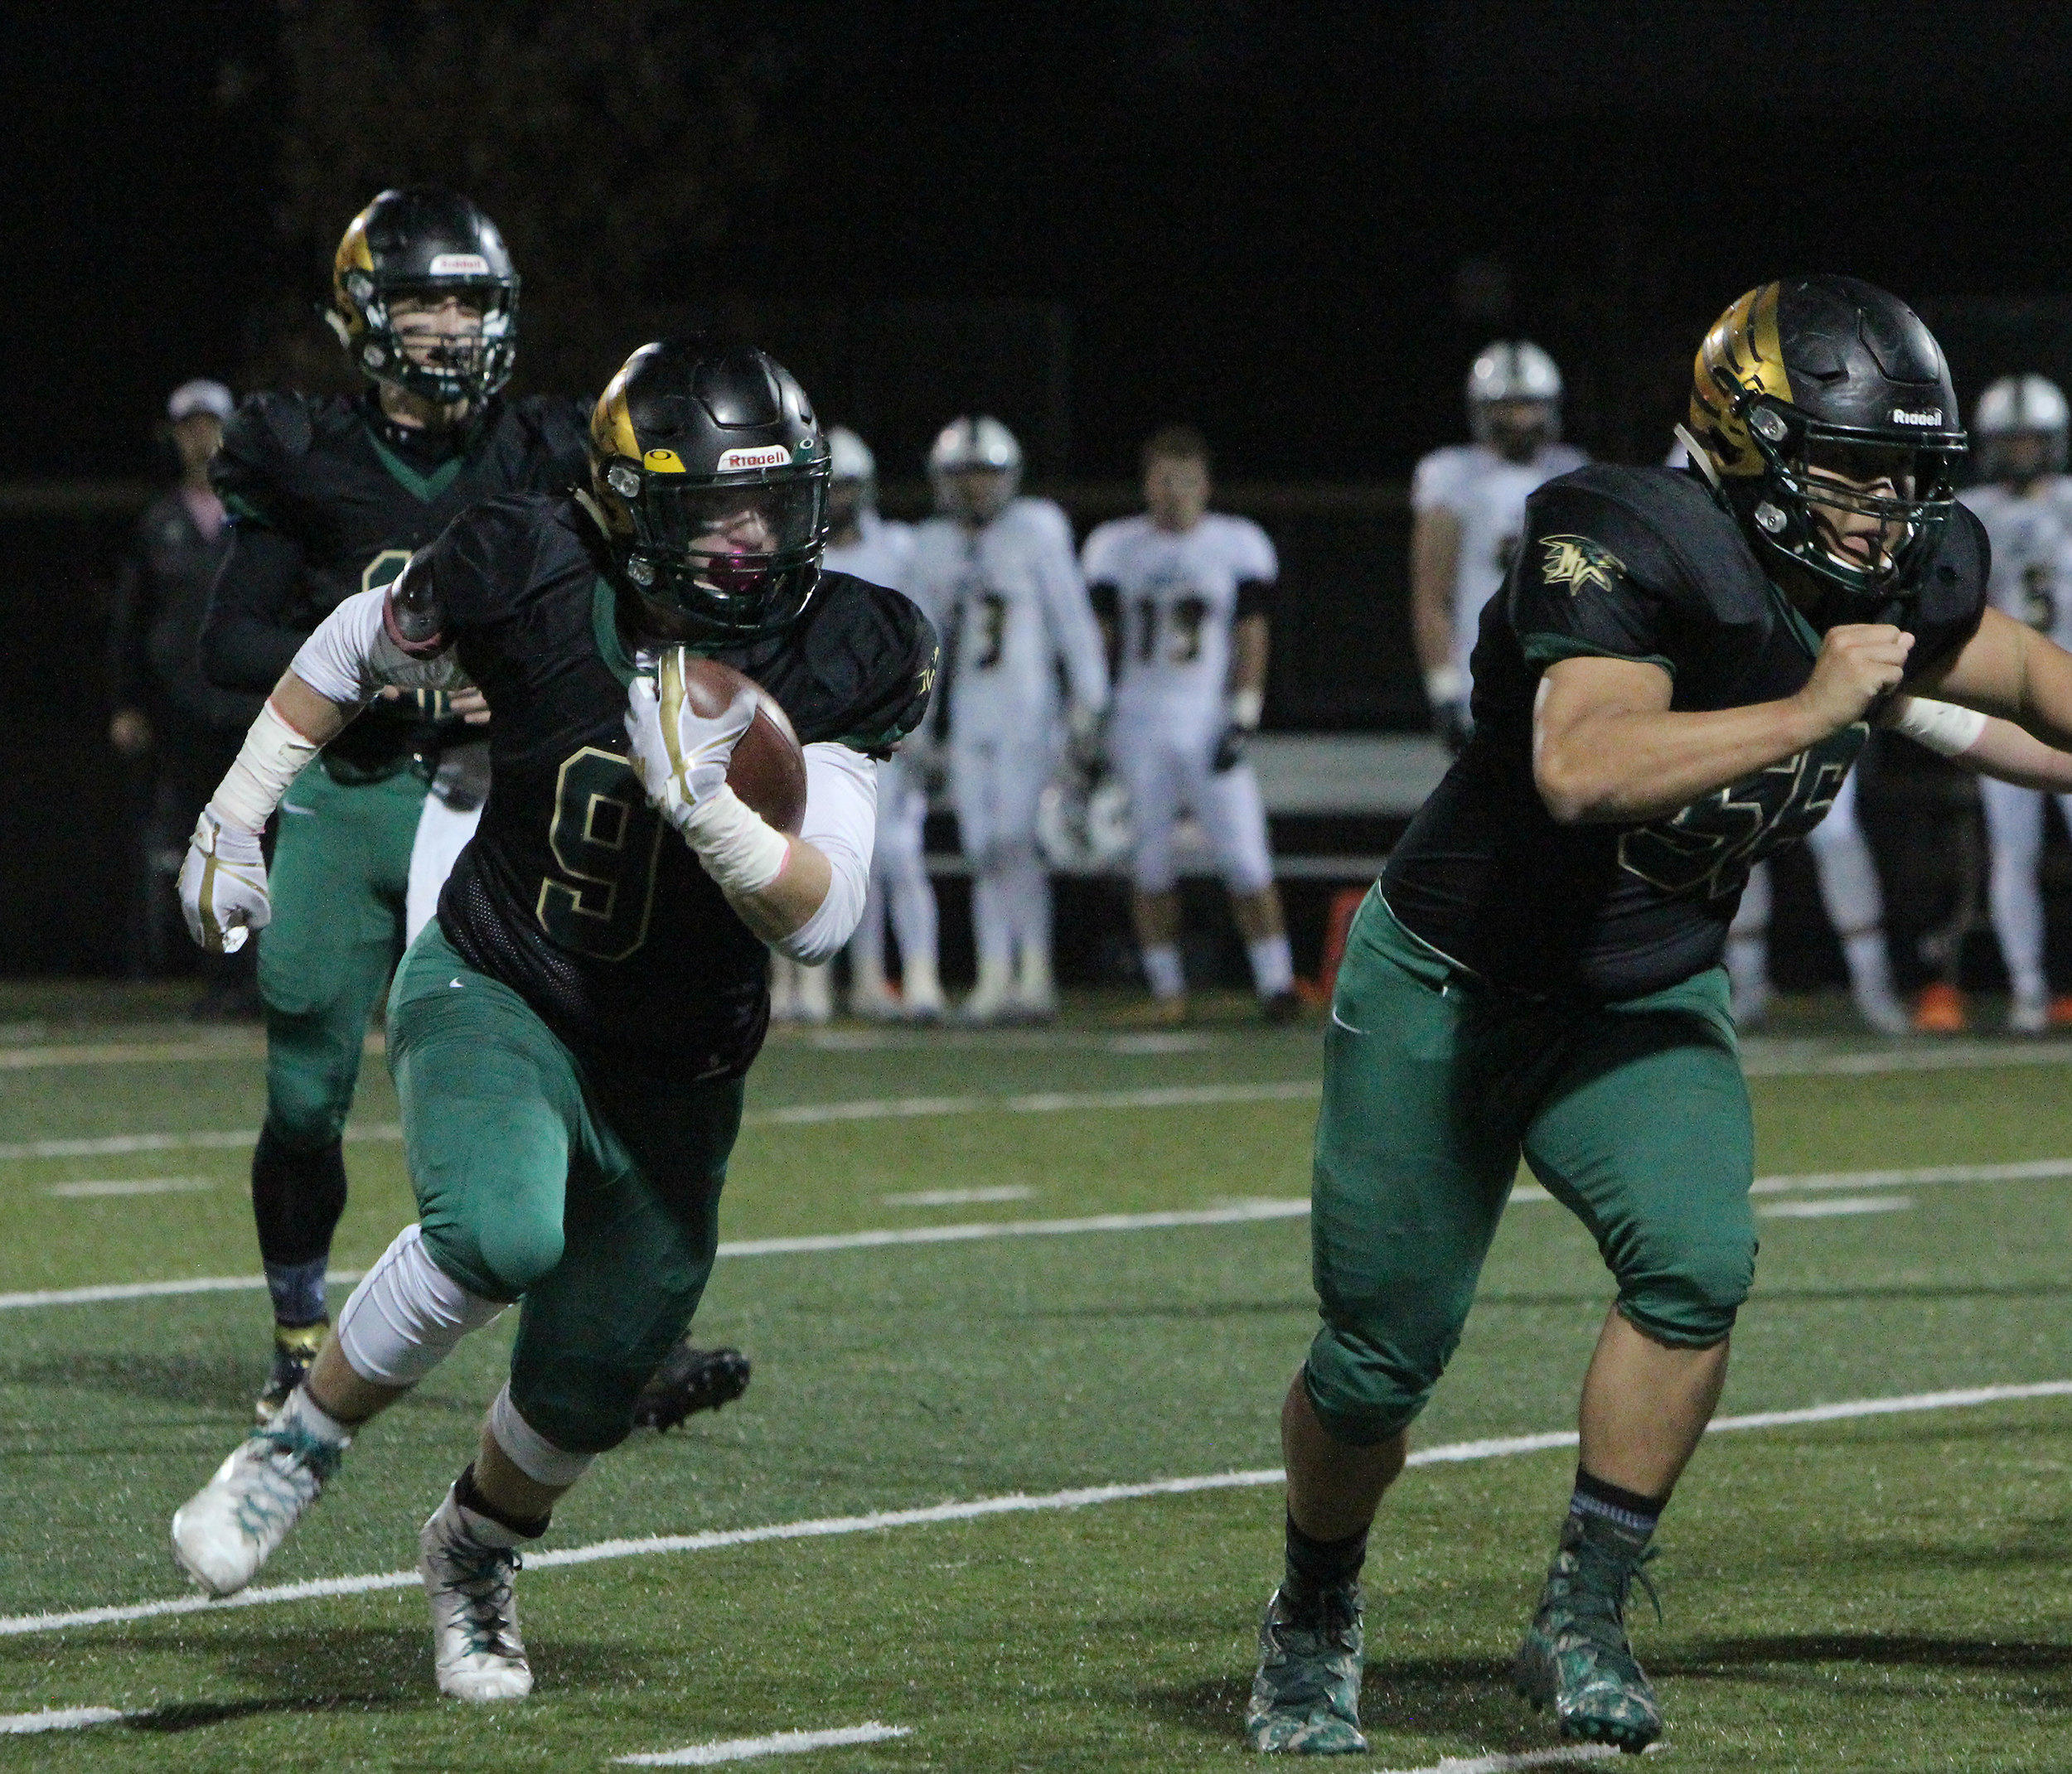 Senior Colton Whiteside craddles the ball after a handoff.